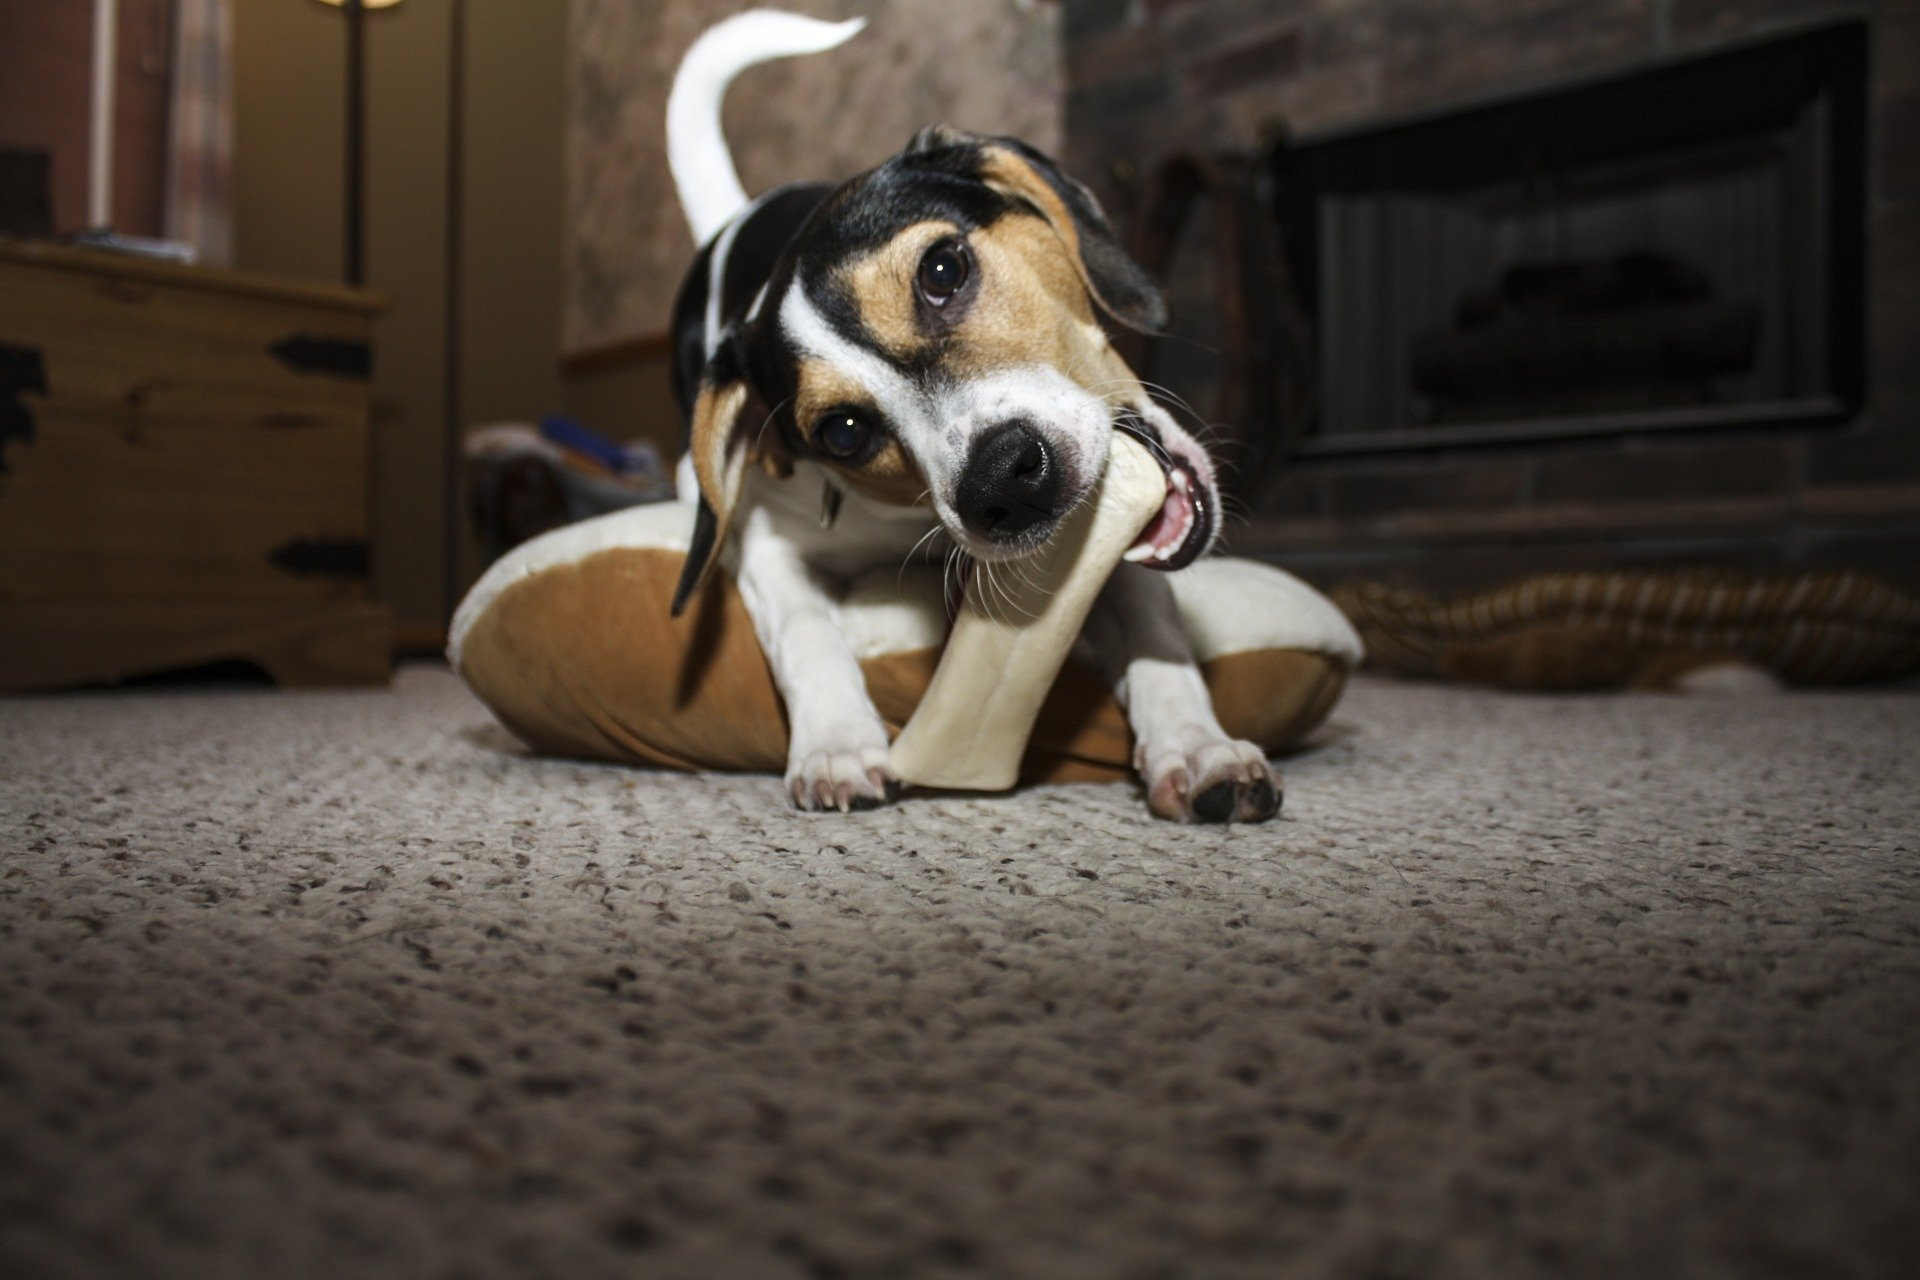 Puppy eating a bone - puppy food enrichment ideas featured image